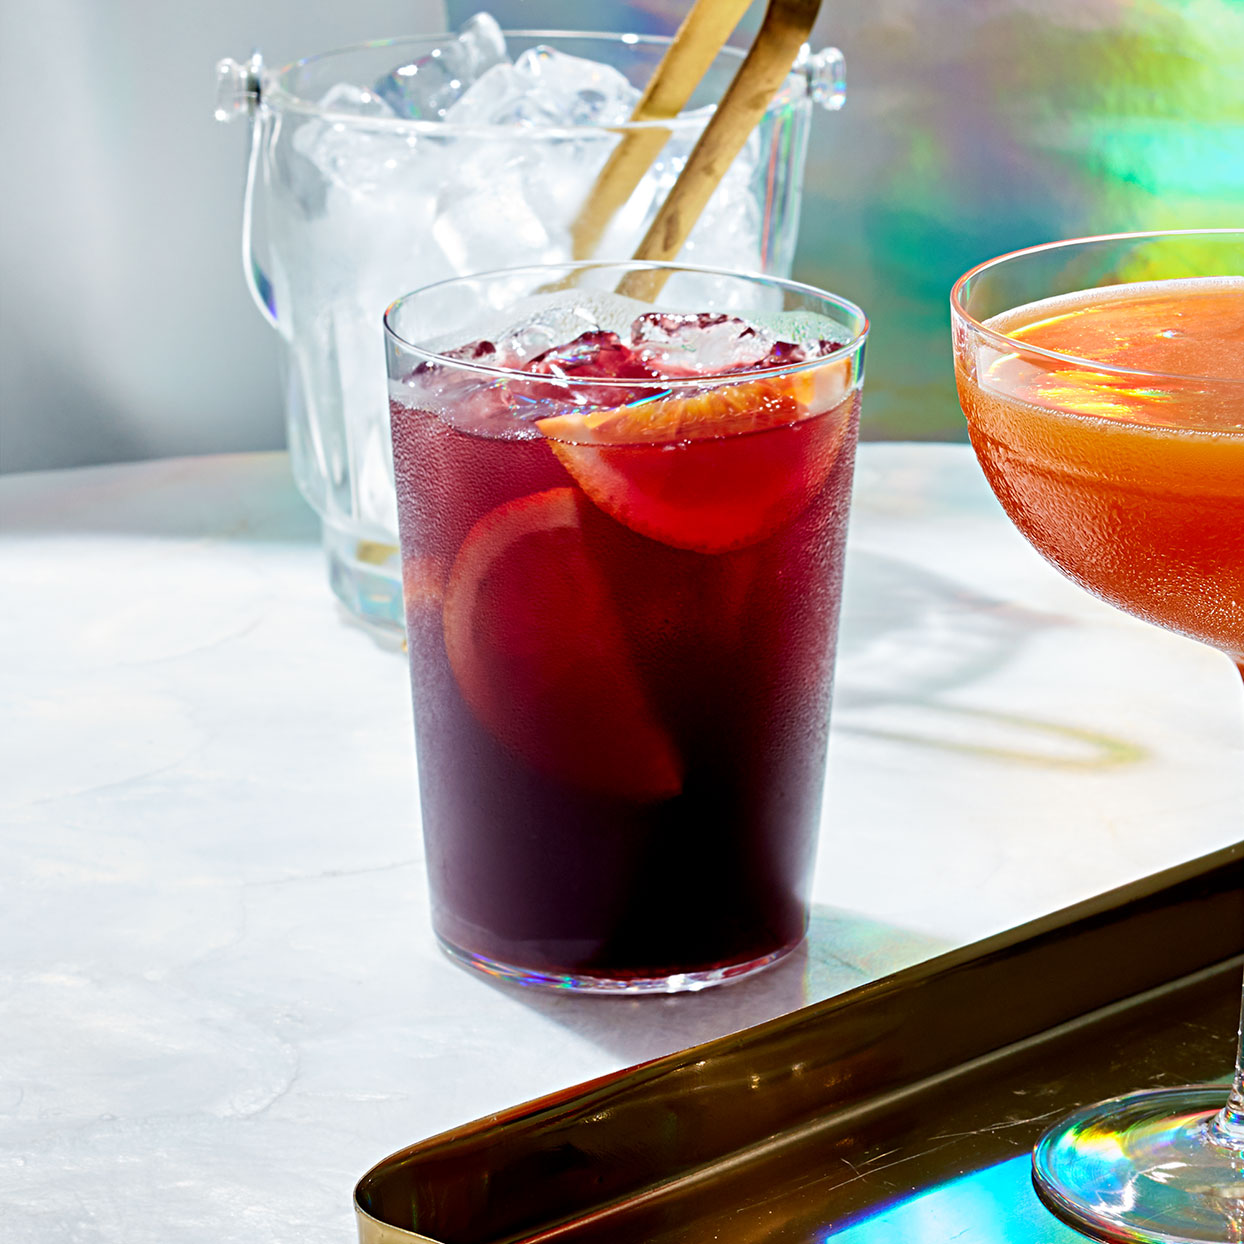 Kombucha gives a nice fizz to this holiday sangria. Bonus: It's full of probiotic bacteria that may help maintain a healthy gut.